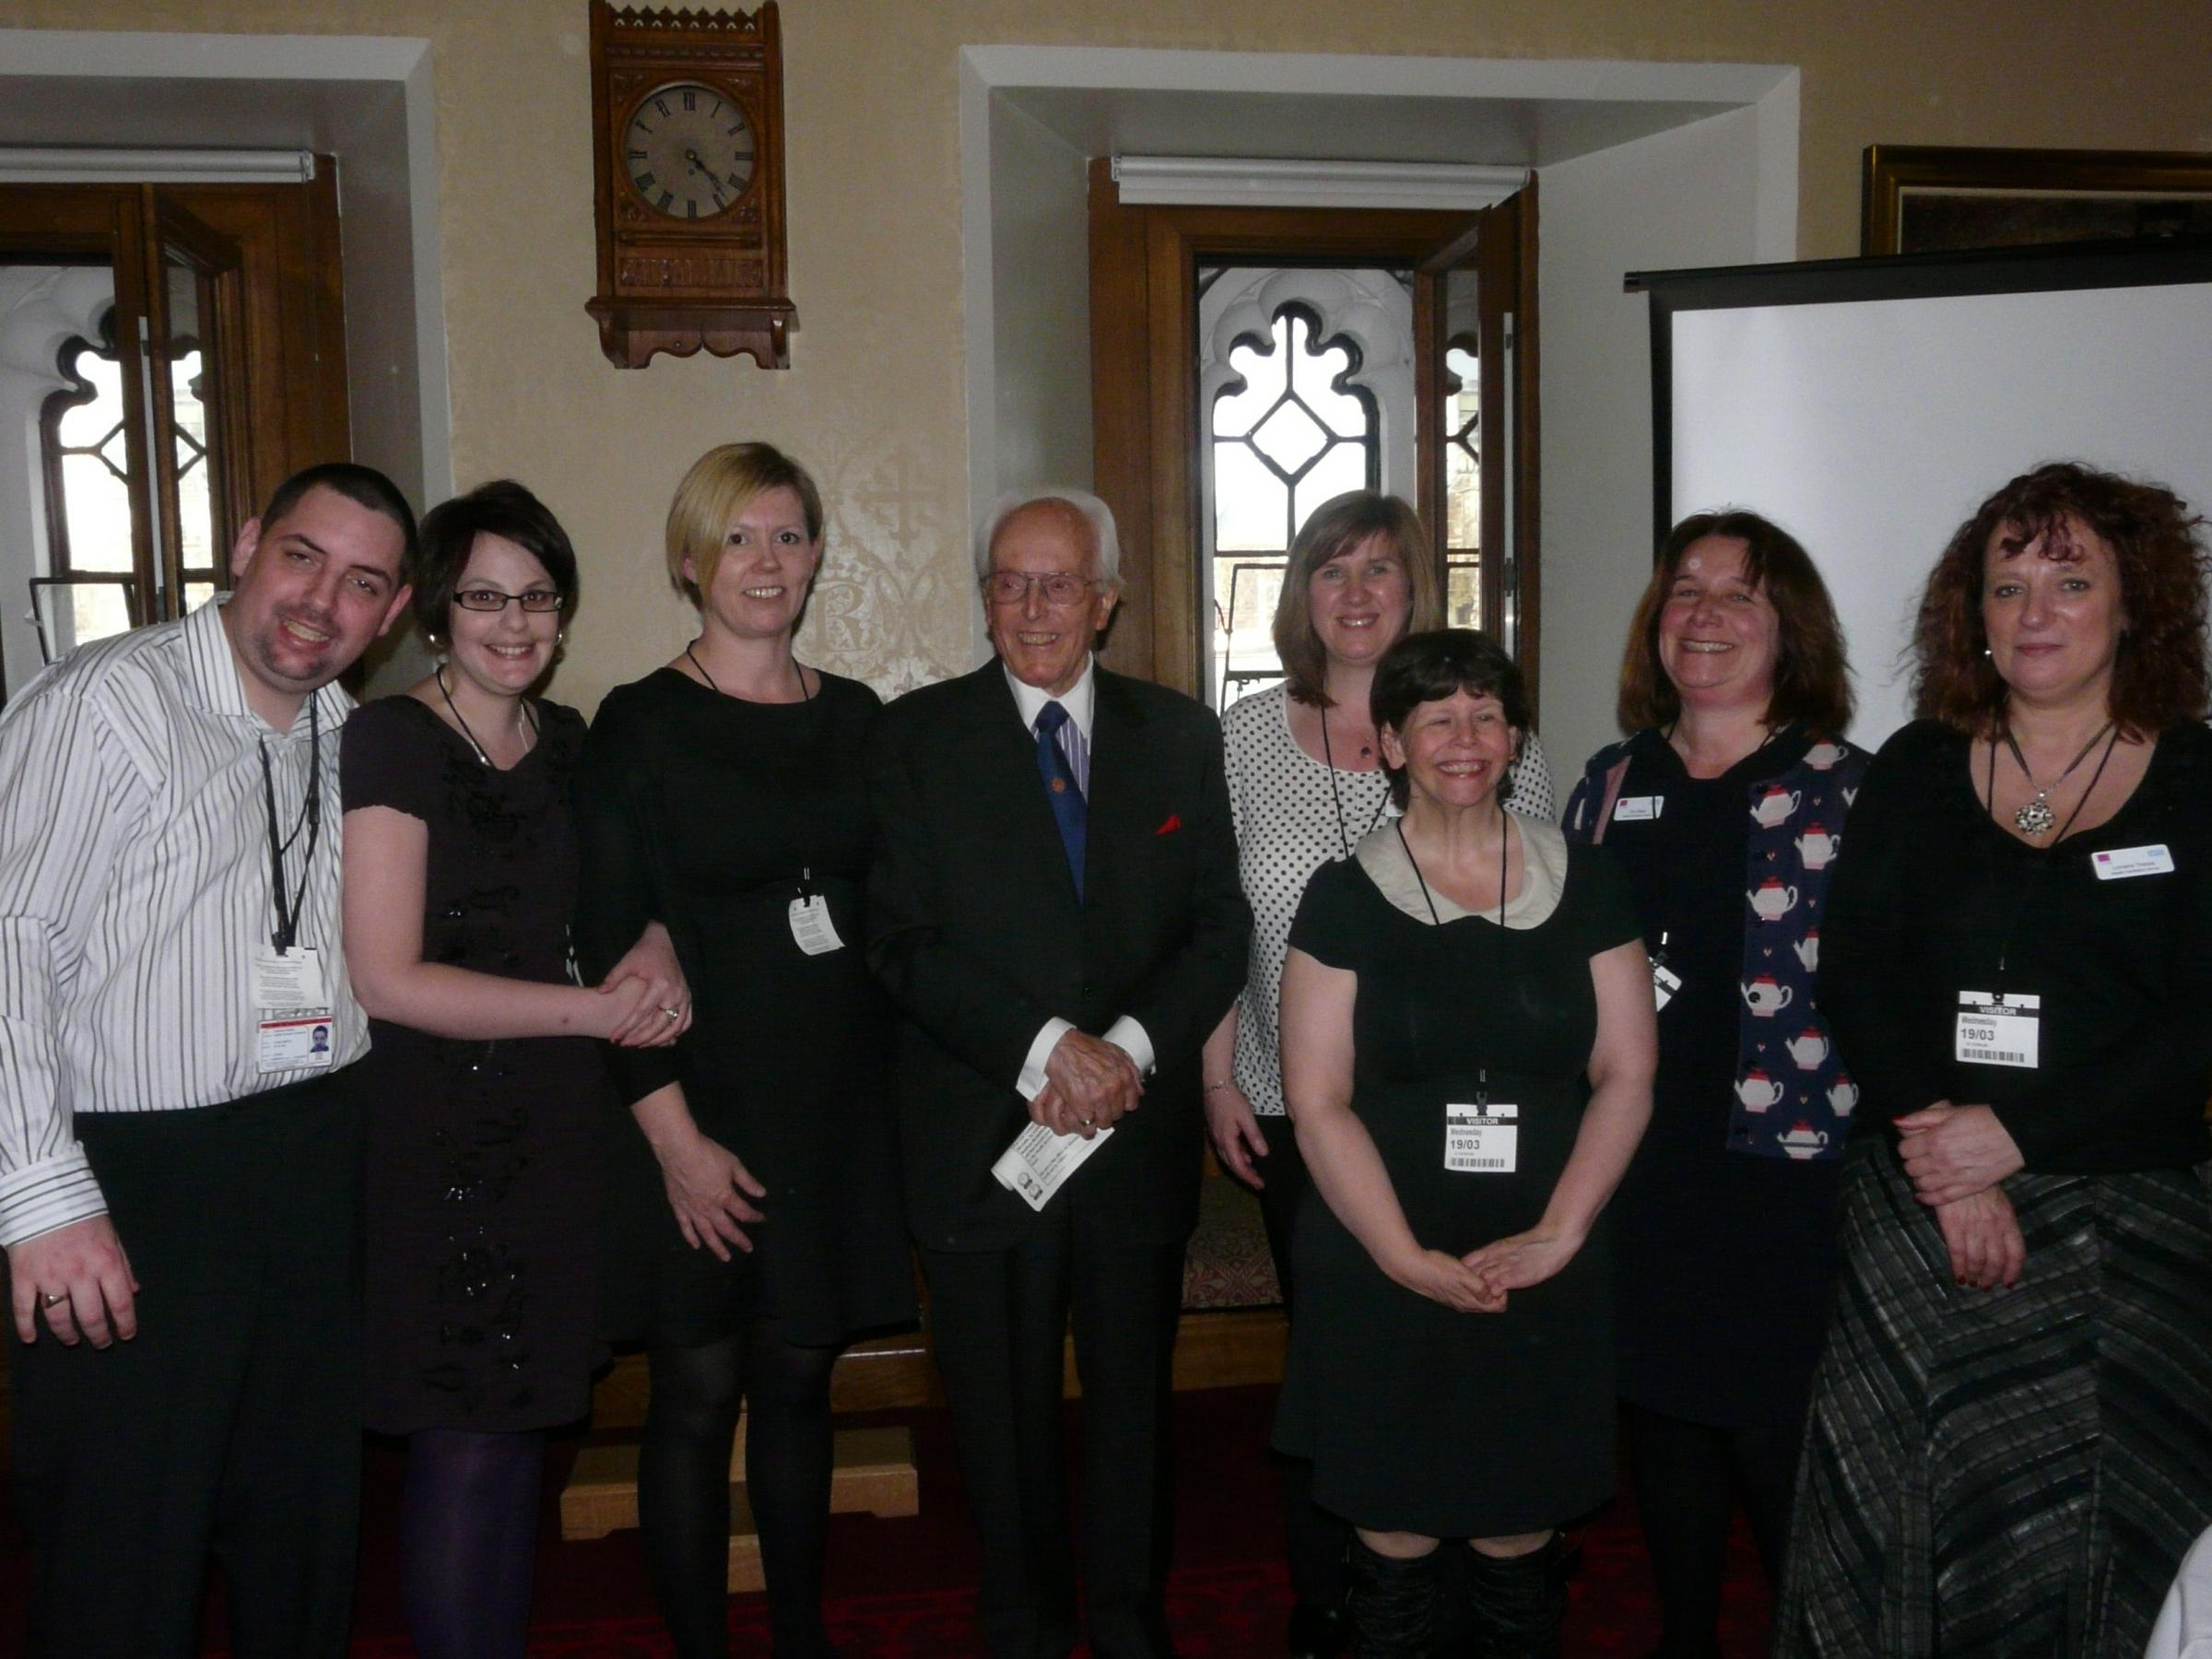 Dedicated - Southend Hospital's learning disabilities comittee members with Lord Rix, centre, and nurse Sarah Haines, thirdf rom left